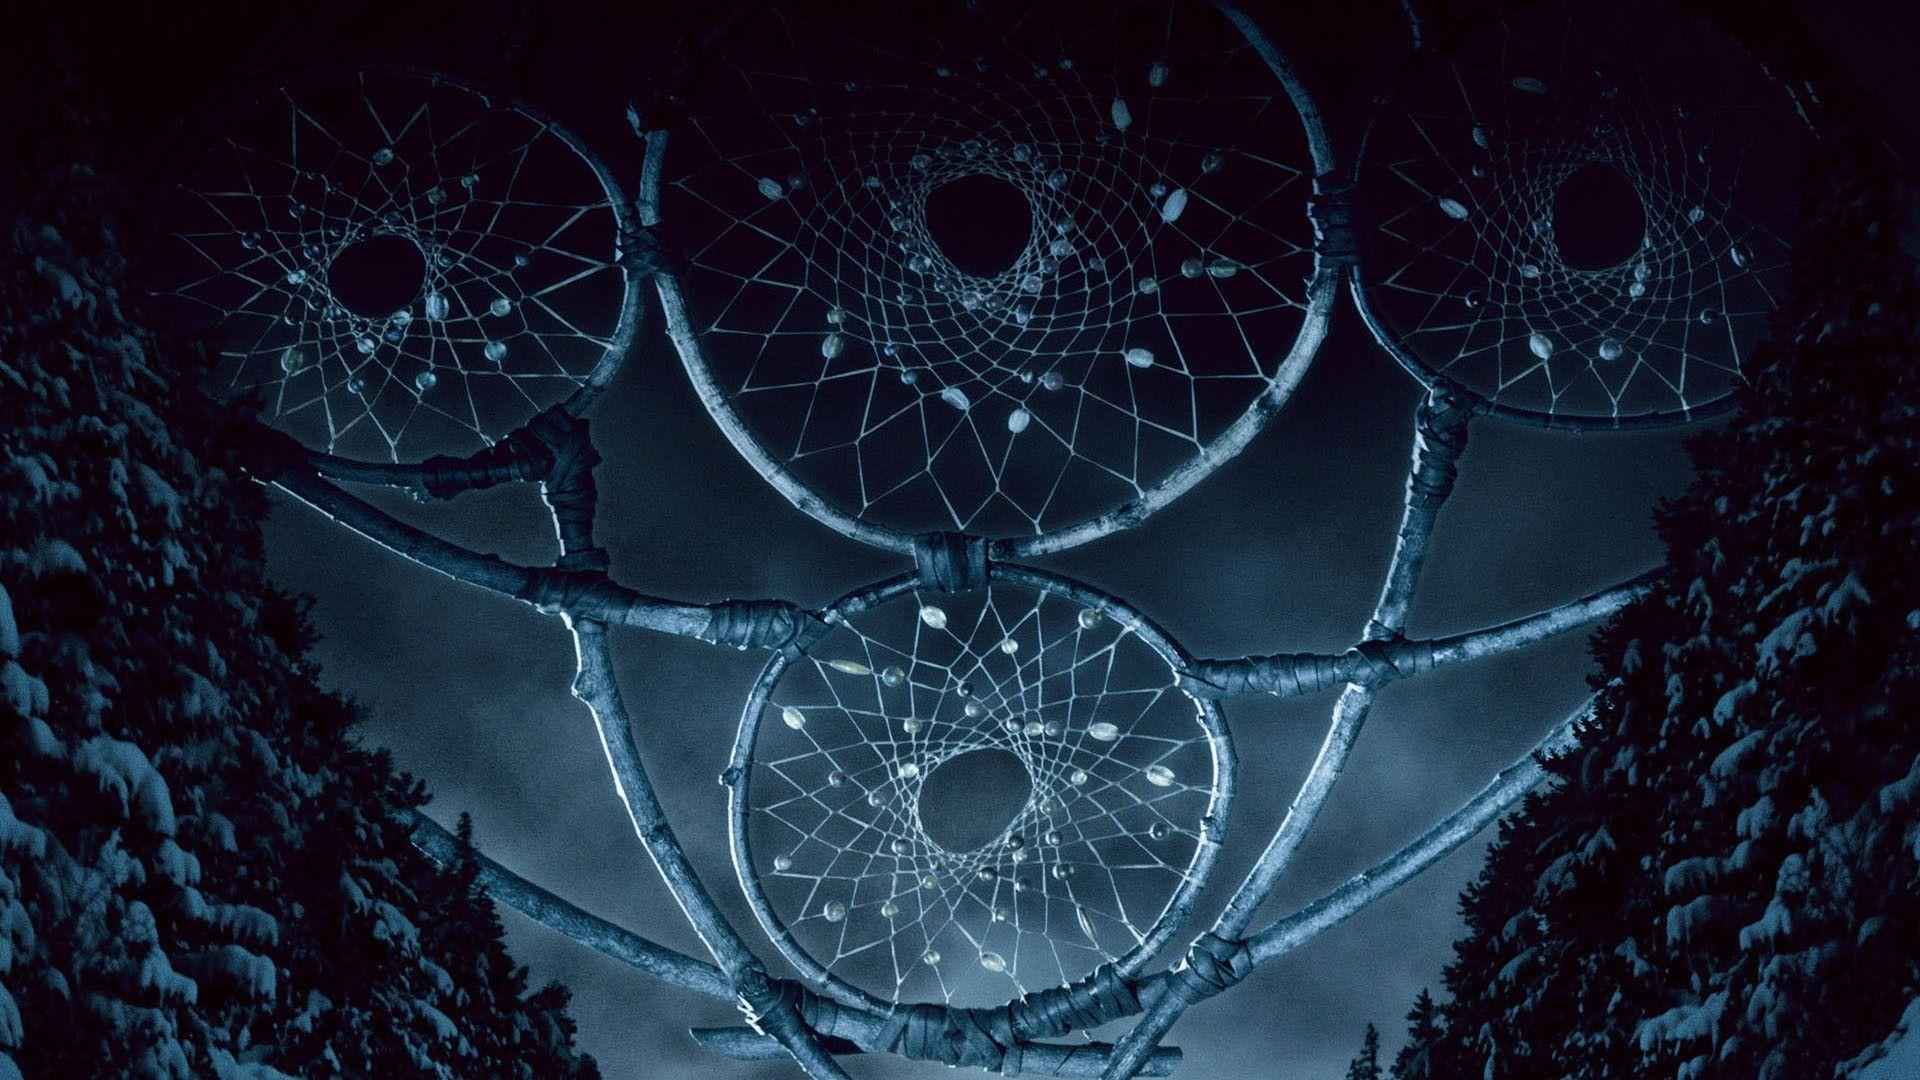 Download Wallpapers 1920x1080 Dreamcatcher, Charm, Totem Full HD